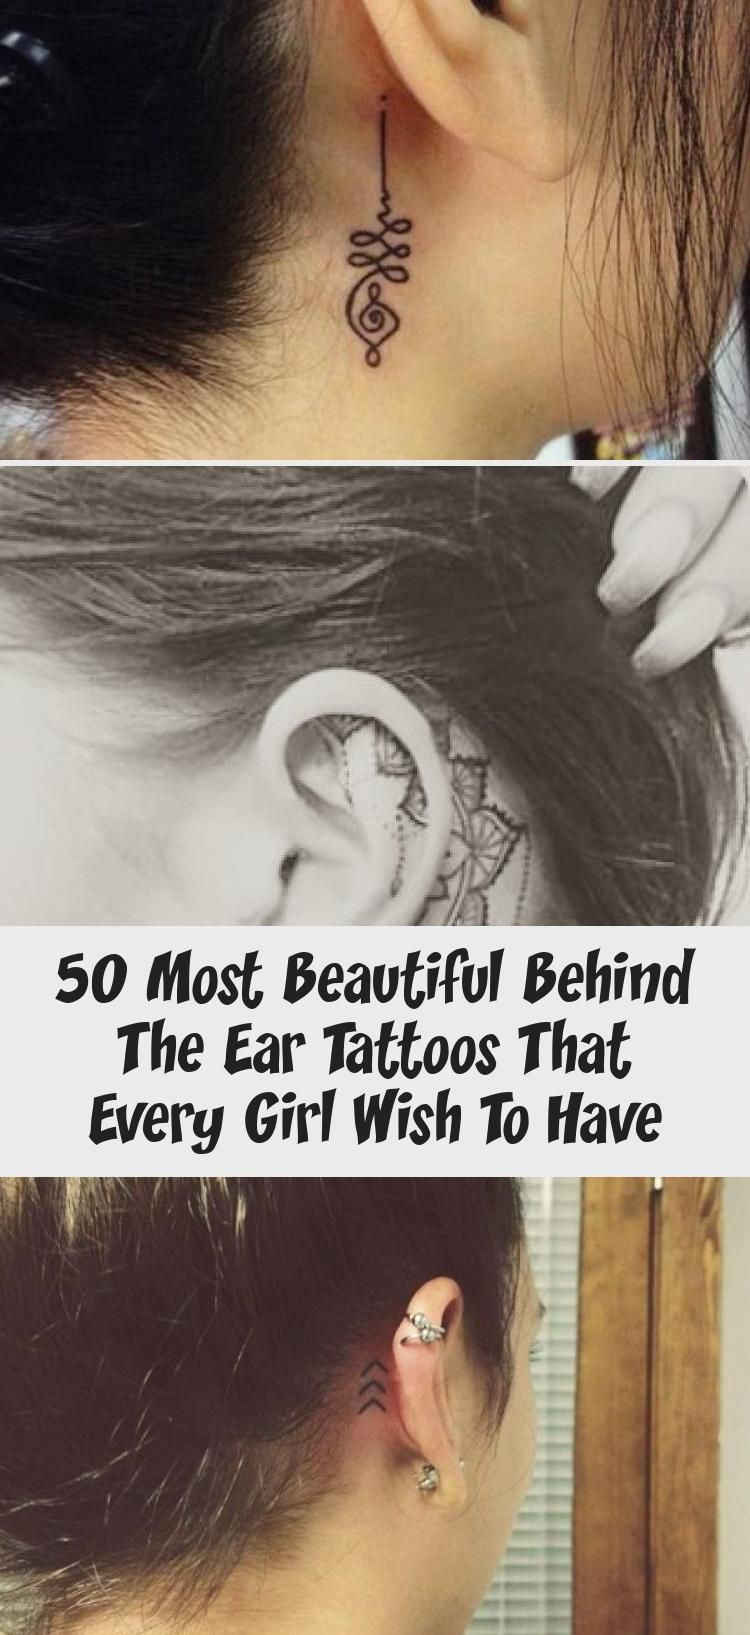 Ear tattoos. Pic by